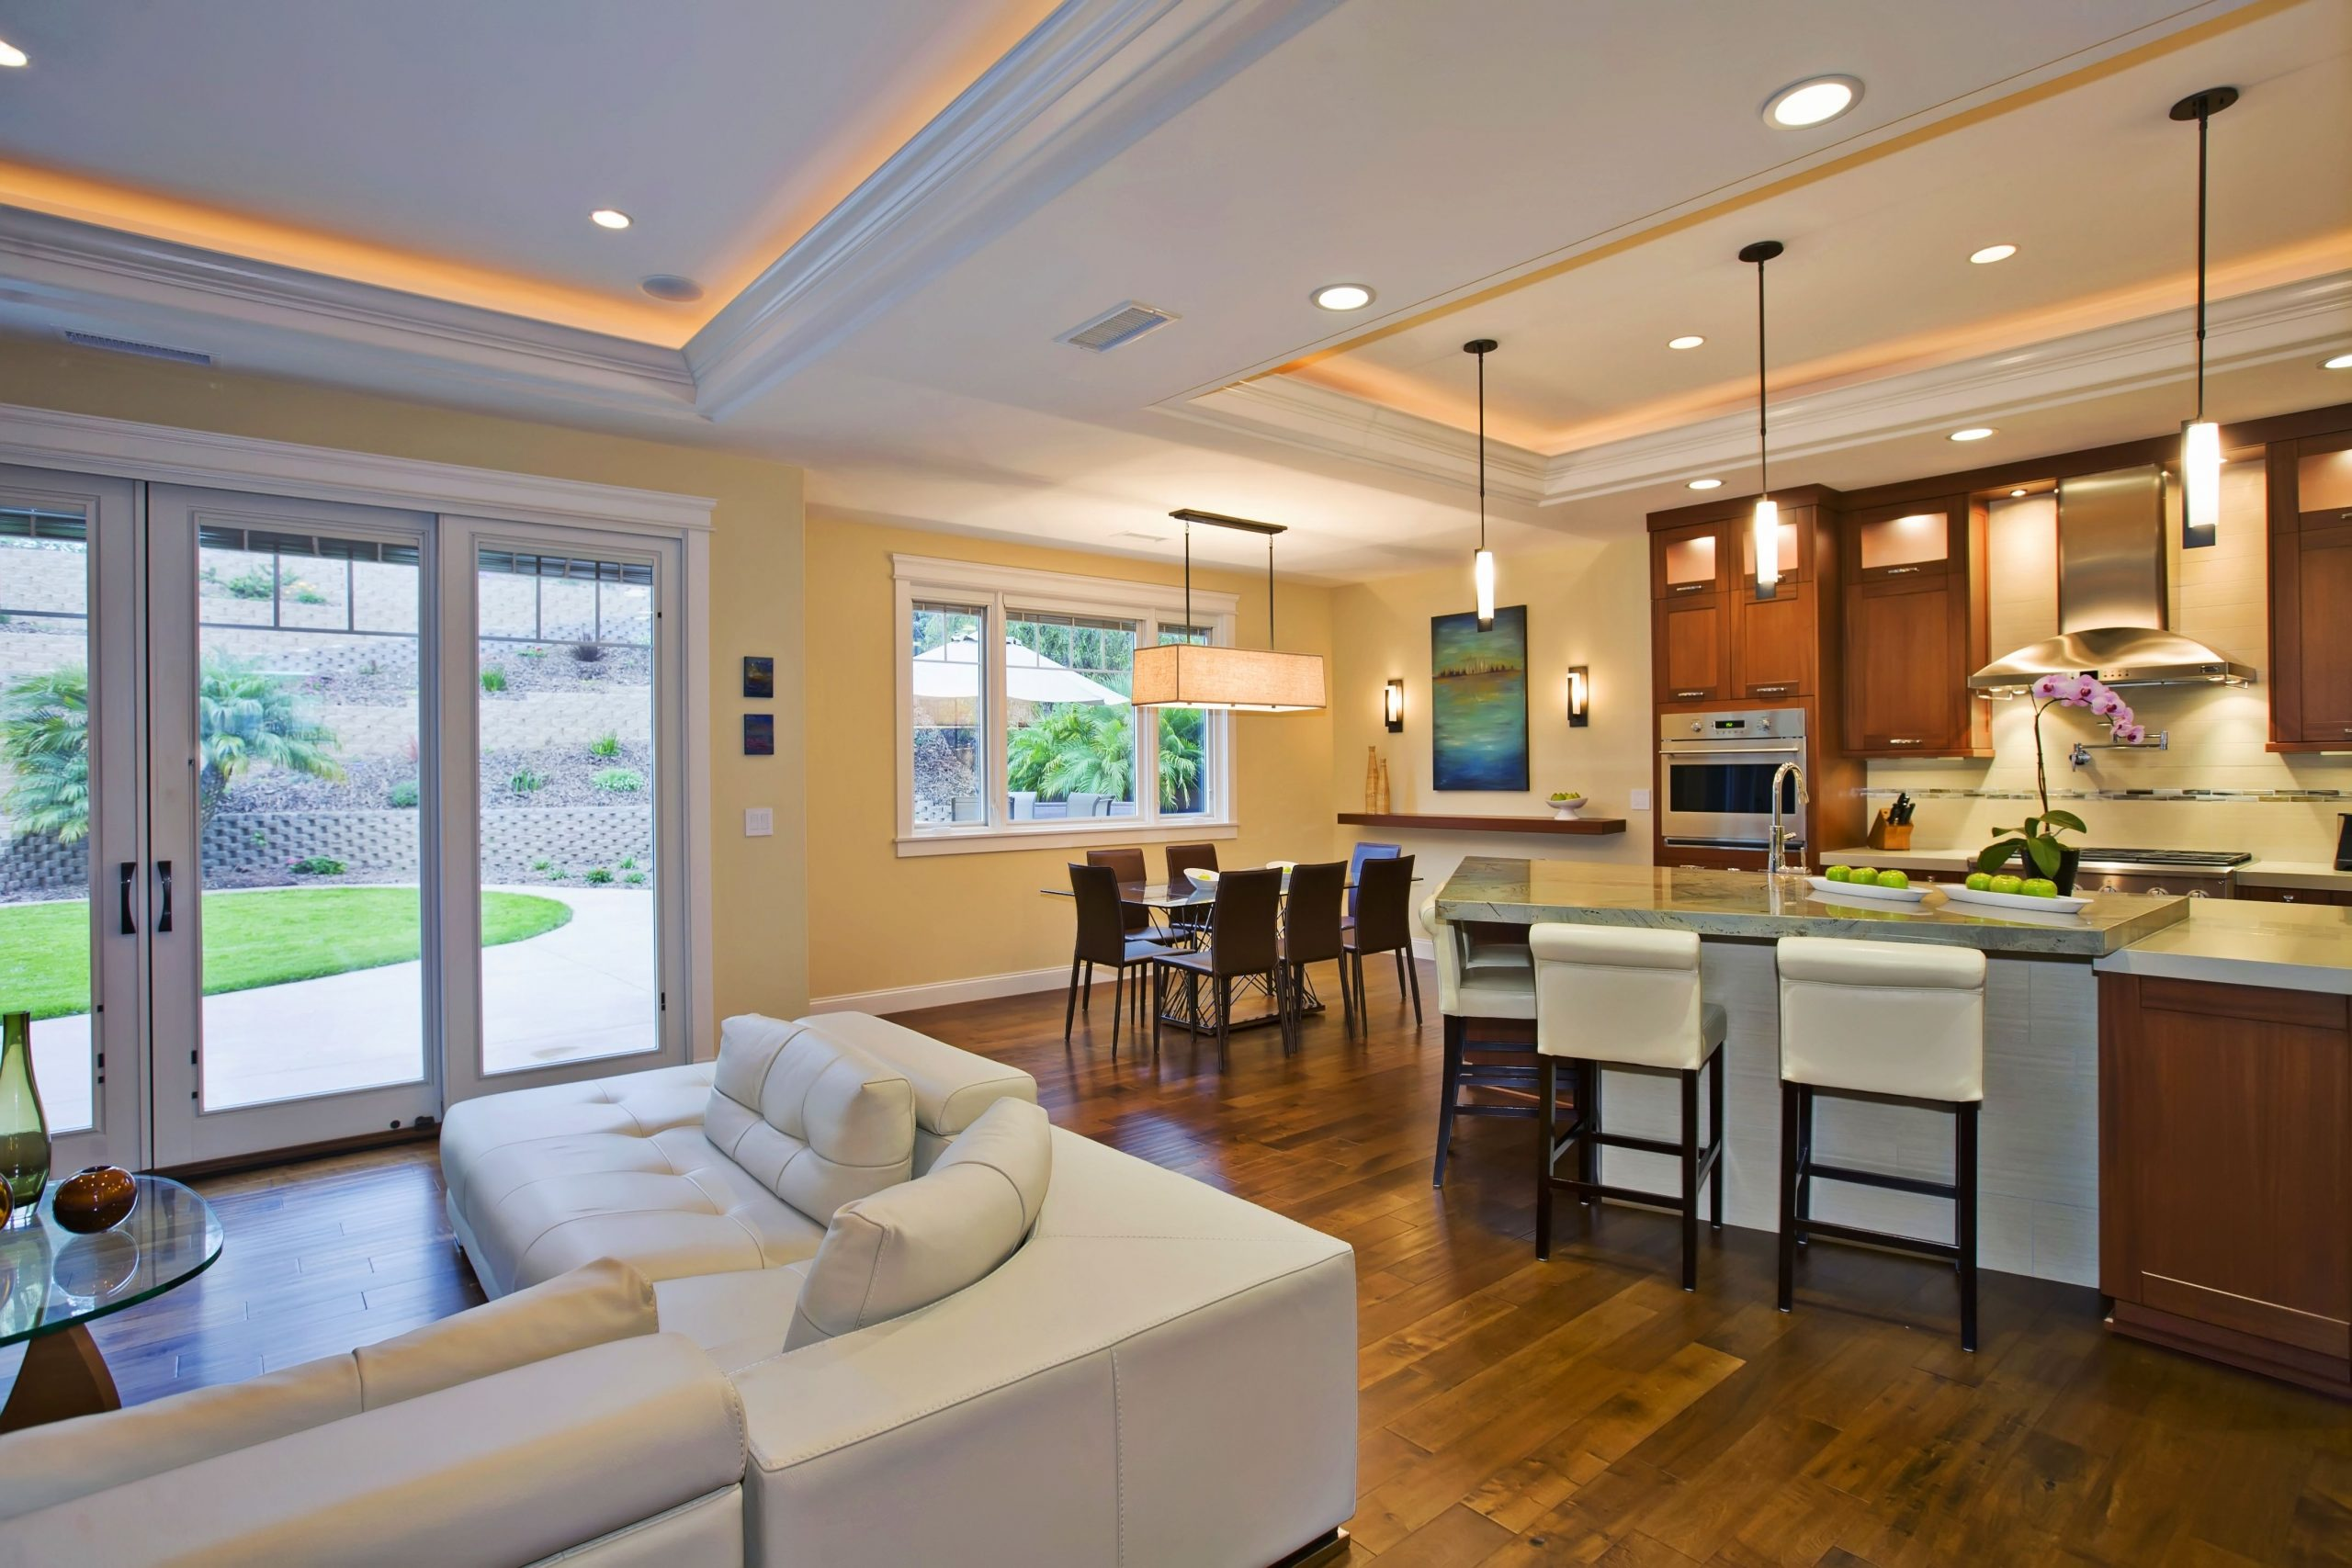 As An Imaginative Alternative To Dropped Beams Or A Soffit 40+ Soffit Lighting Living Room Ideas